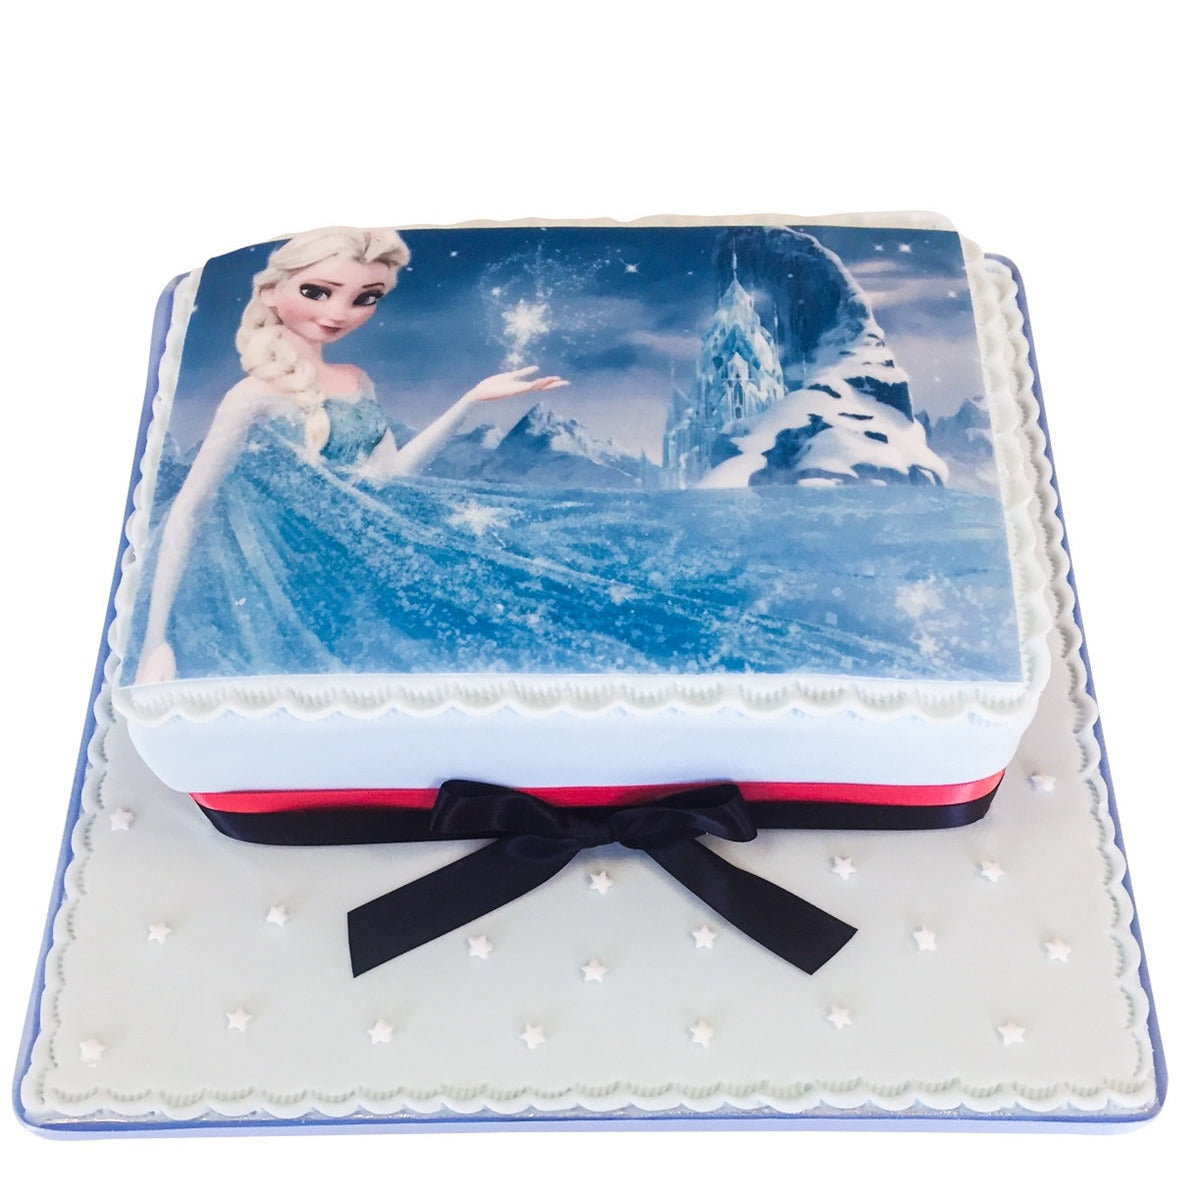 Frozen Birthday Cake Buy Online Free UK Delivery New Cakes